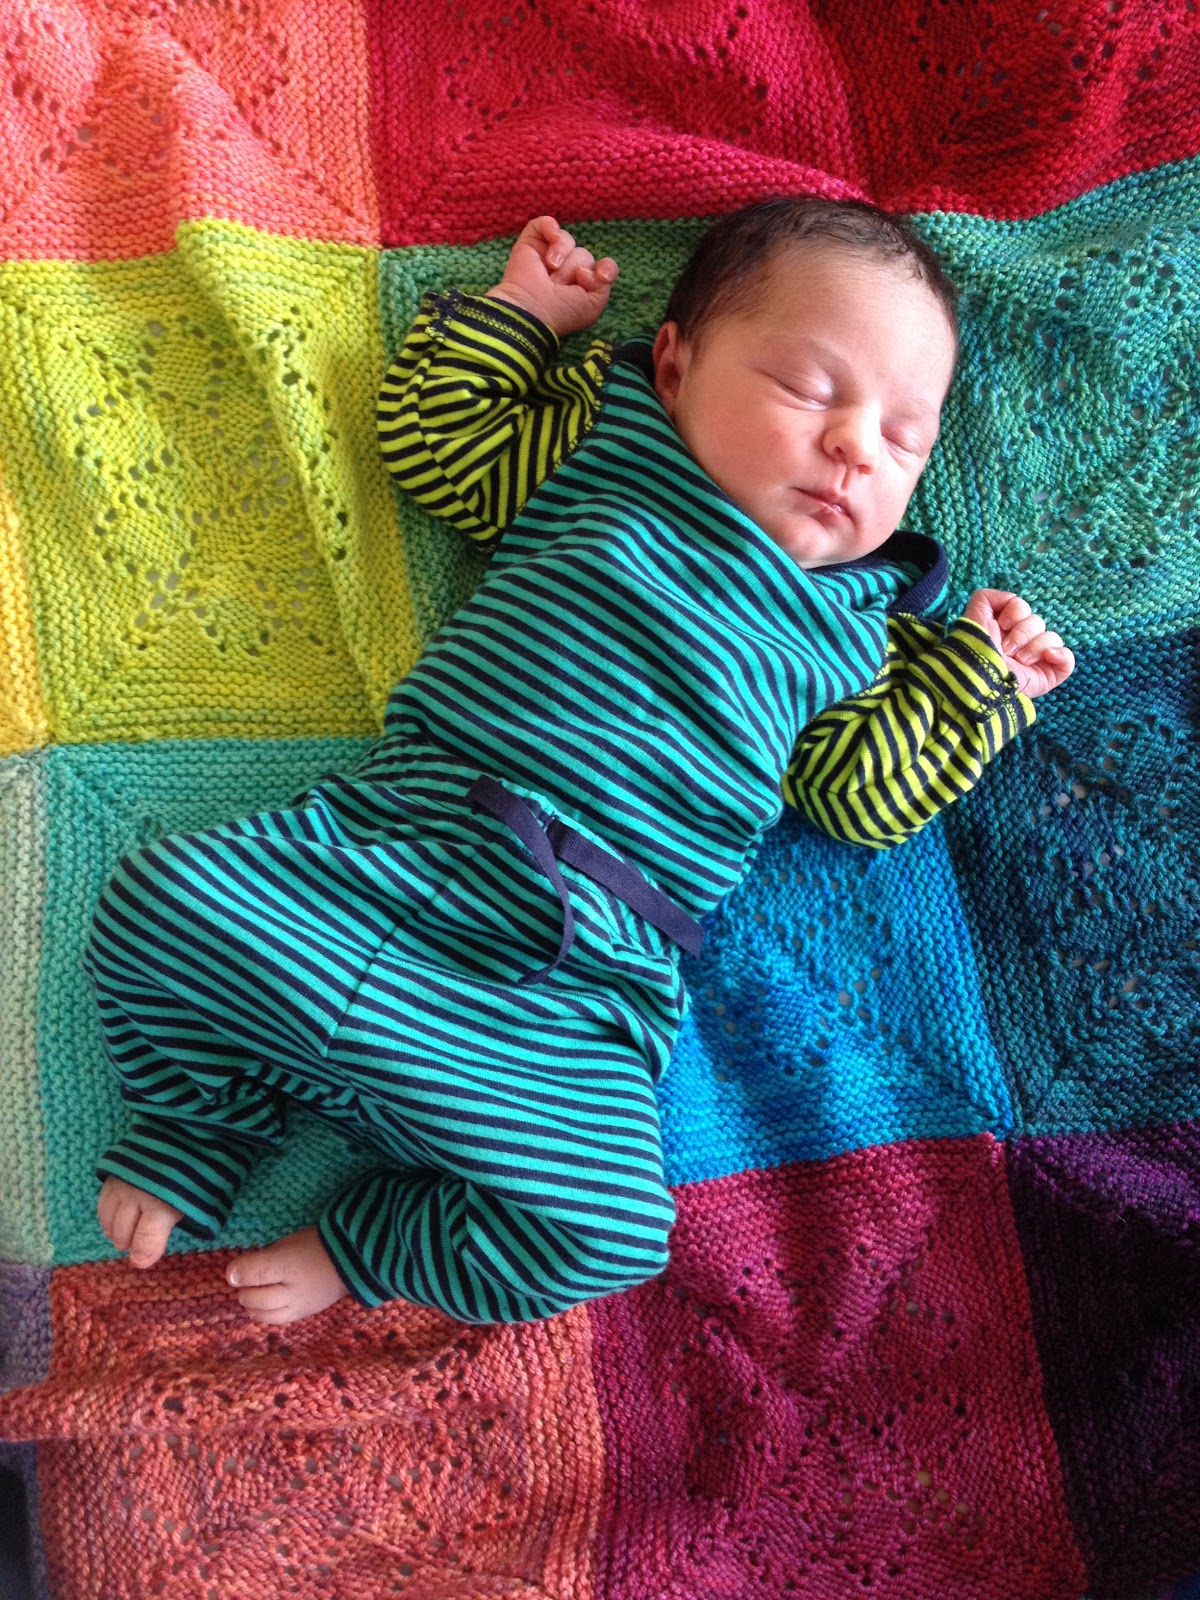 A little baby Bodhi dressed in a navy and turquoise sweat suit that is a little too big. Laying on her back on her hand knit blanket in a rainbow of squares.